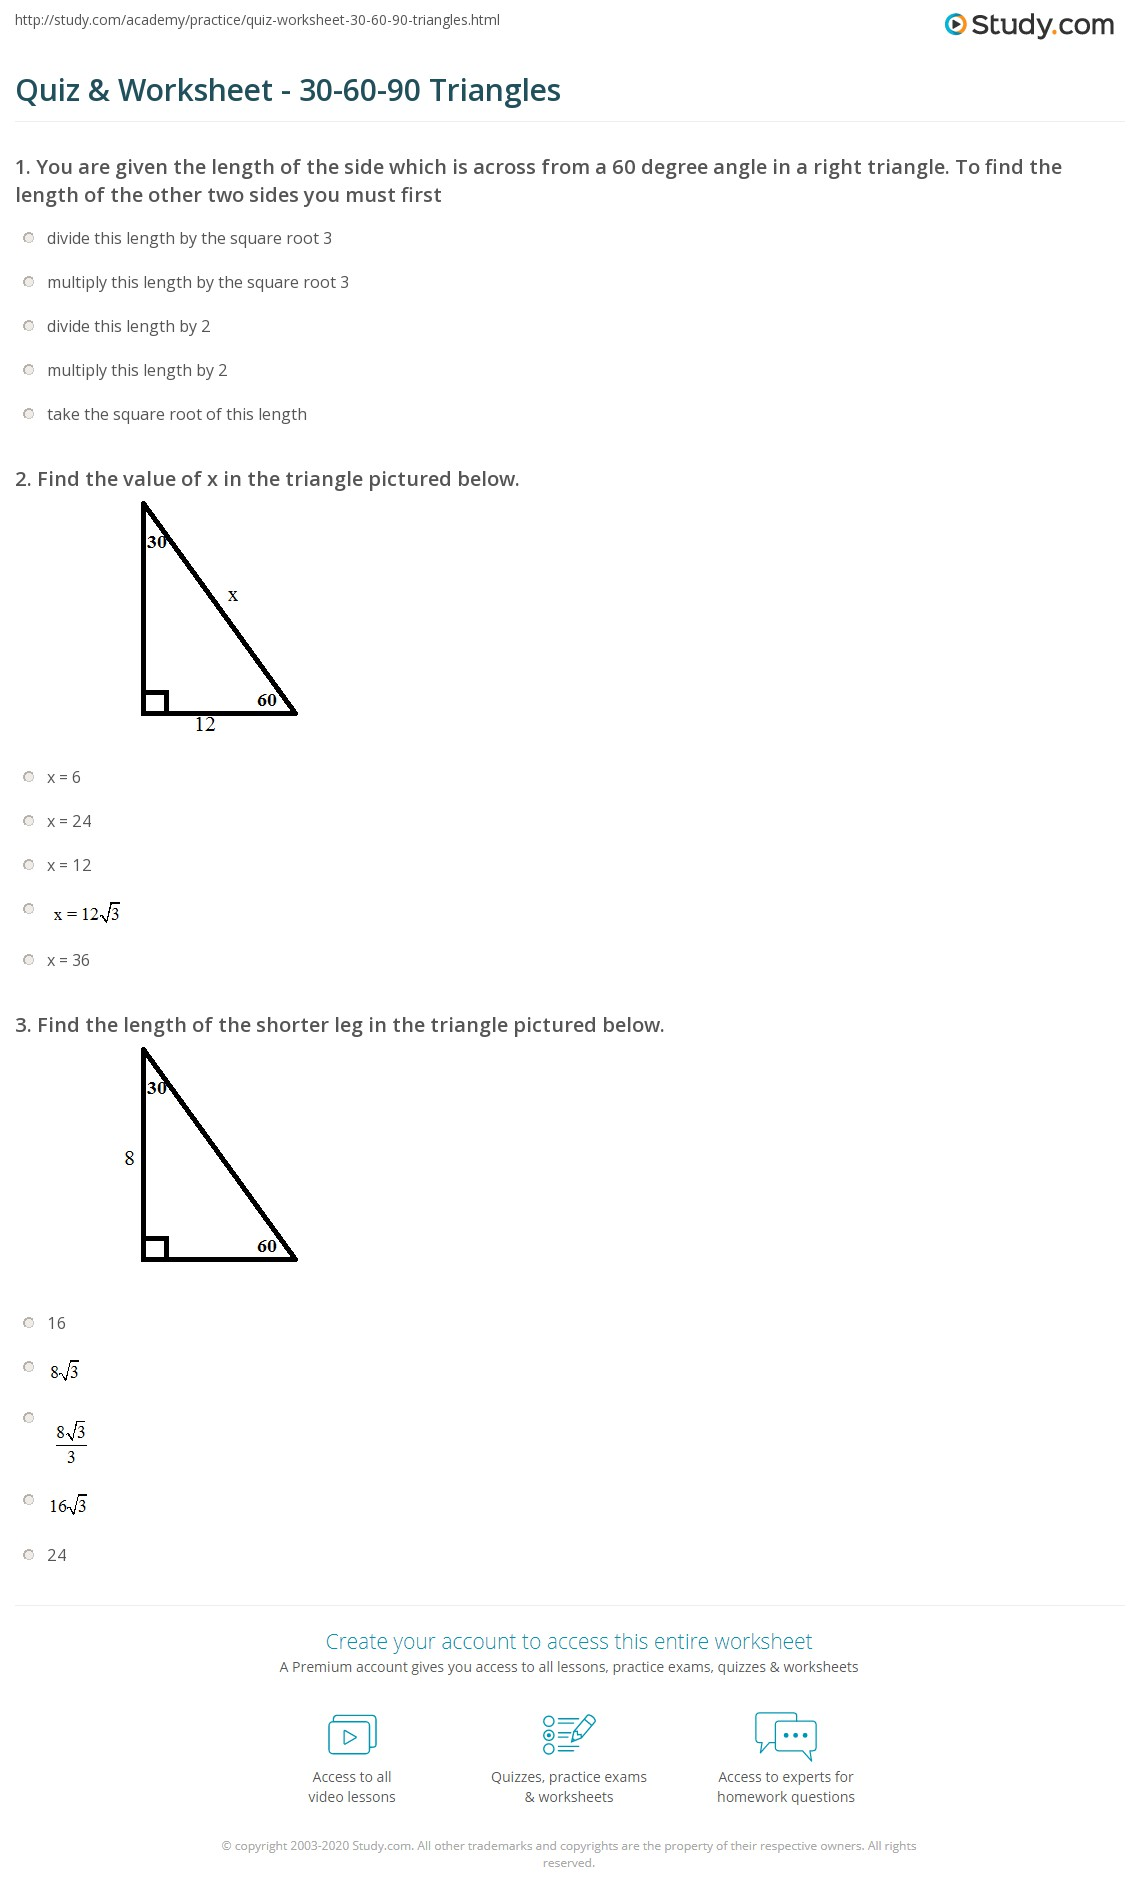 Worksheet 30-60-90 Triangle Worksheet quiz worksheet 30 60 90 triangles study com print triangle theorem properties formula worksheet